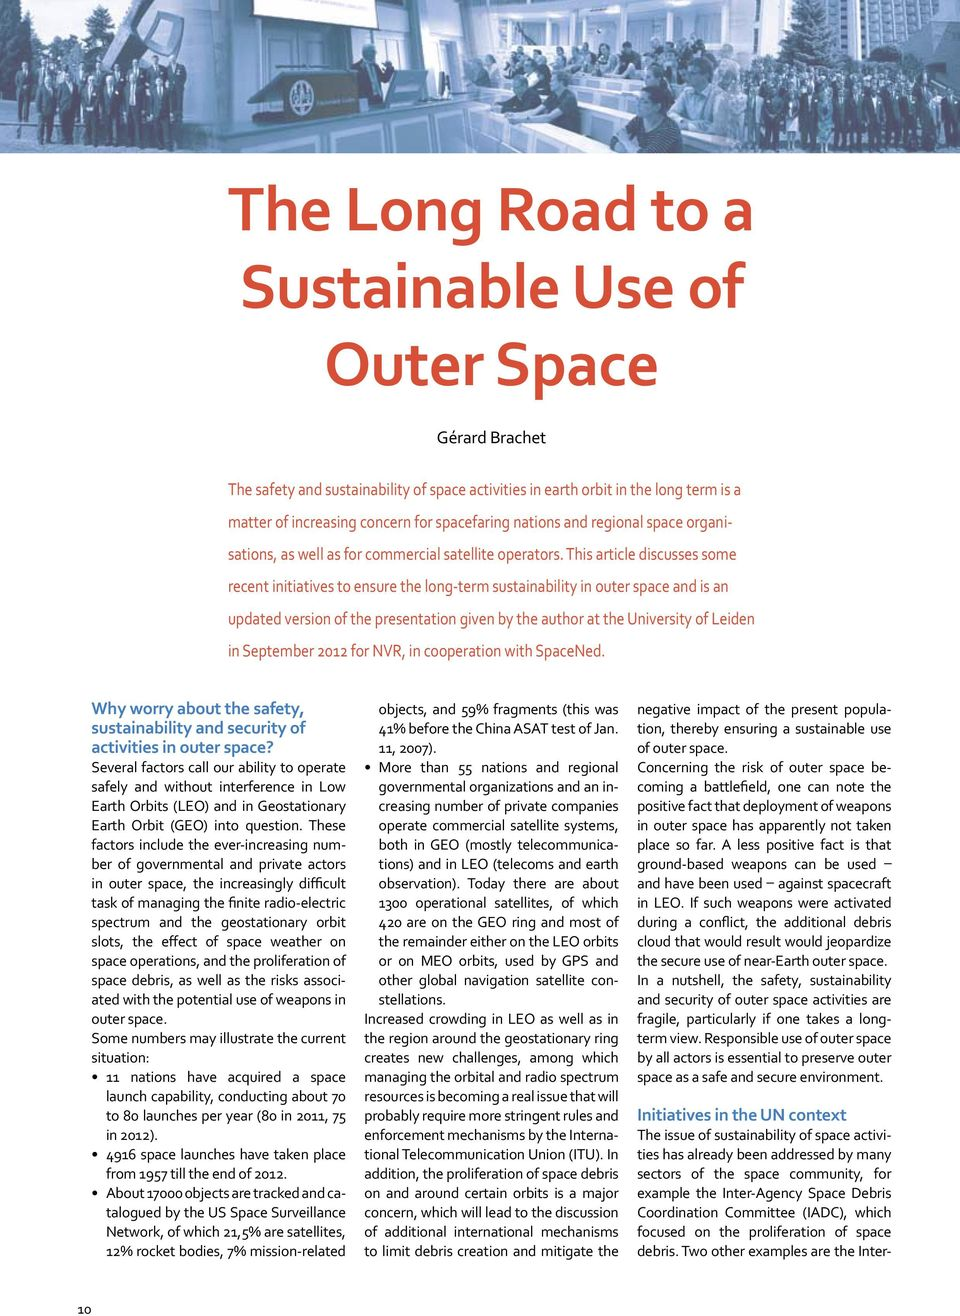 This article discusses some recent initiatives to ensure the long-term sustainability in outer space and is an updated version of the presentation given by the author at the University of Leiden in